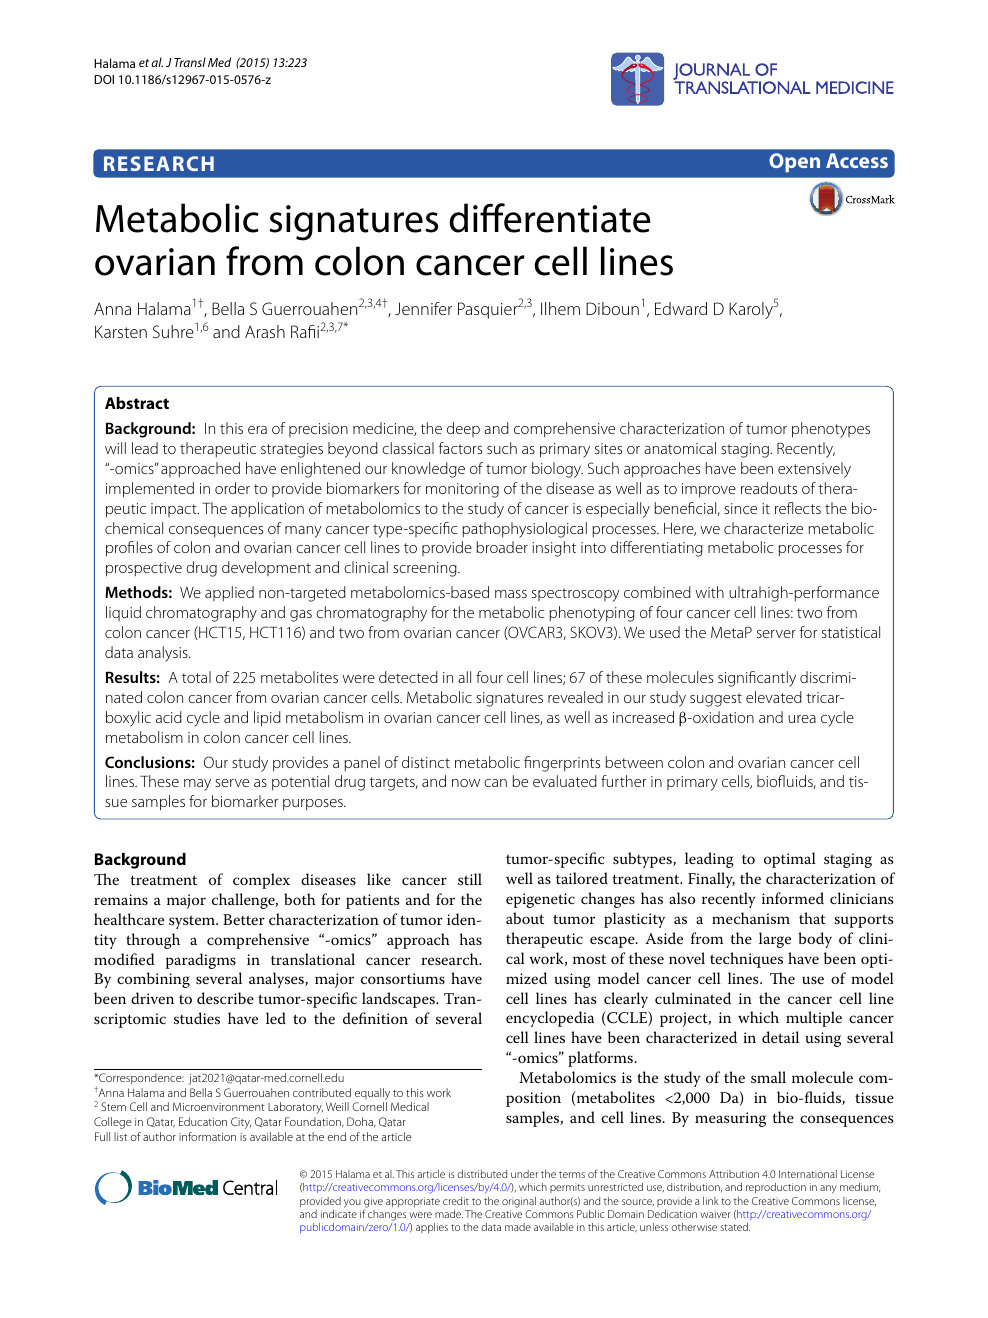 Metabolic Signatures Differentiate Ovarian From Colon Cancer Cell Lines Topic Of Research Paper In Veterinary Science Download Scholarly Article Pdf And Read For Free On Cyberleninka Open Science Hub